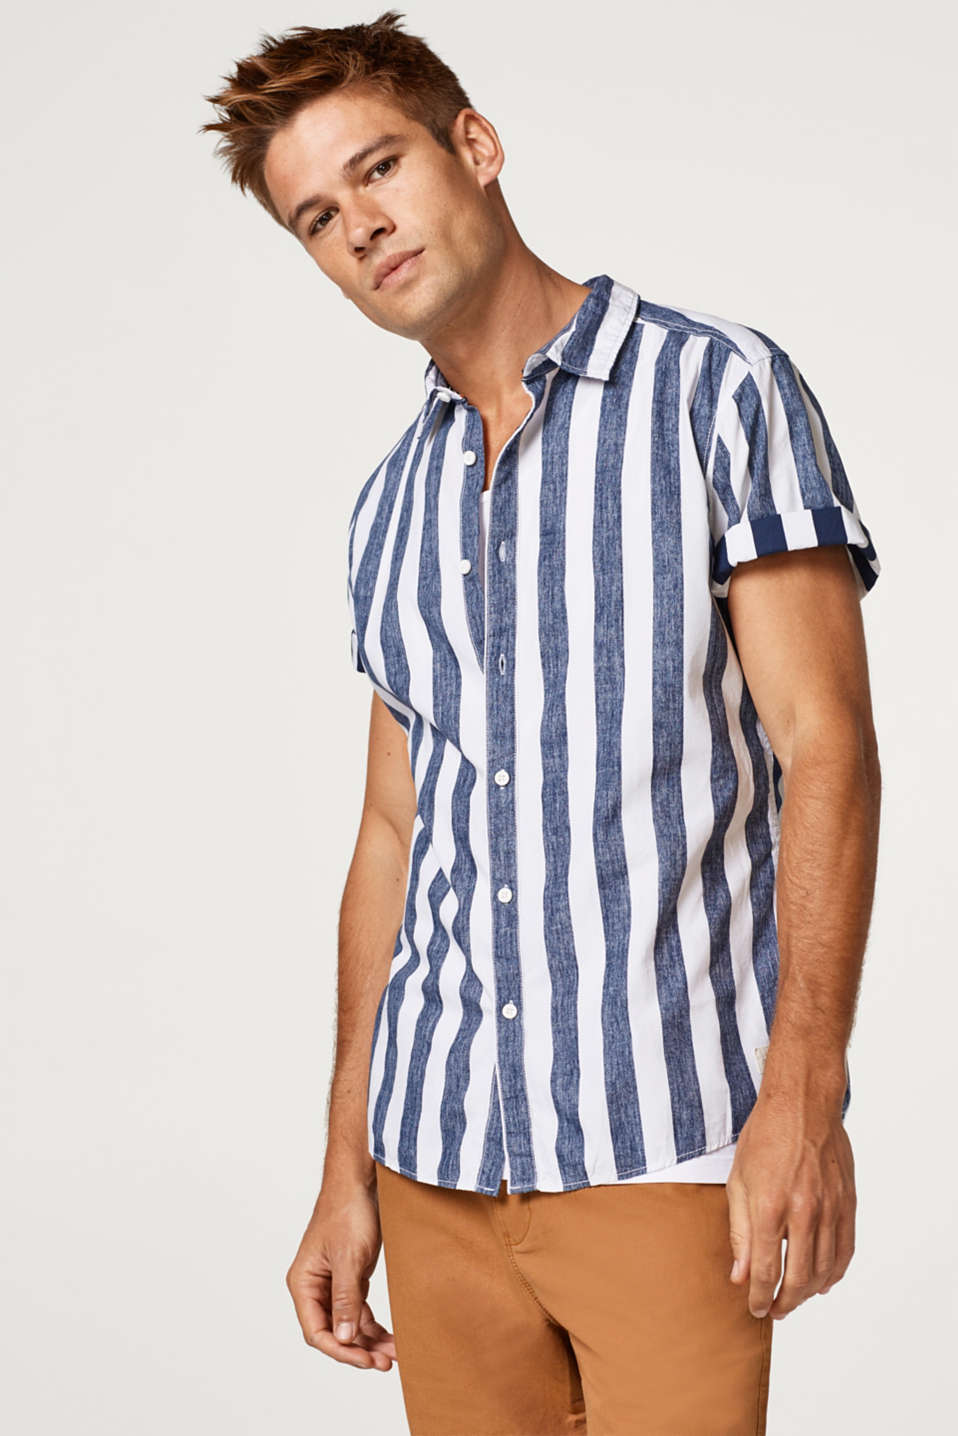 edc - Short sleeve shirt with an inside-out print, in cotton